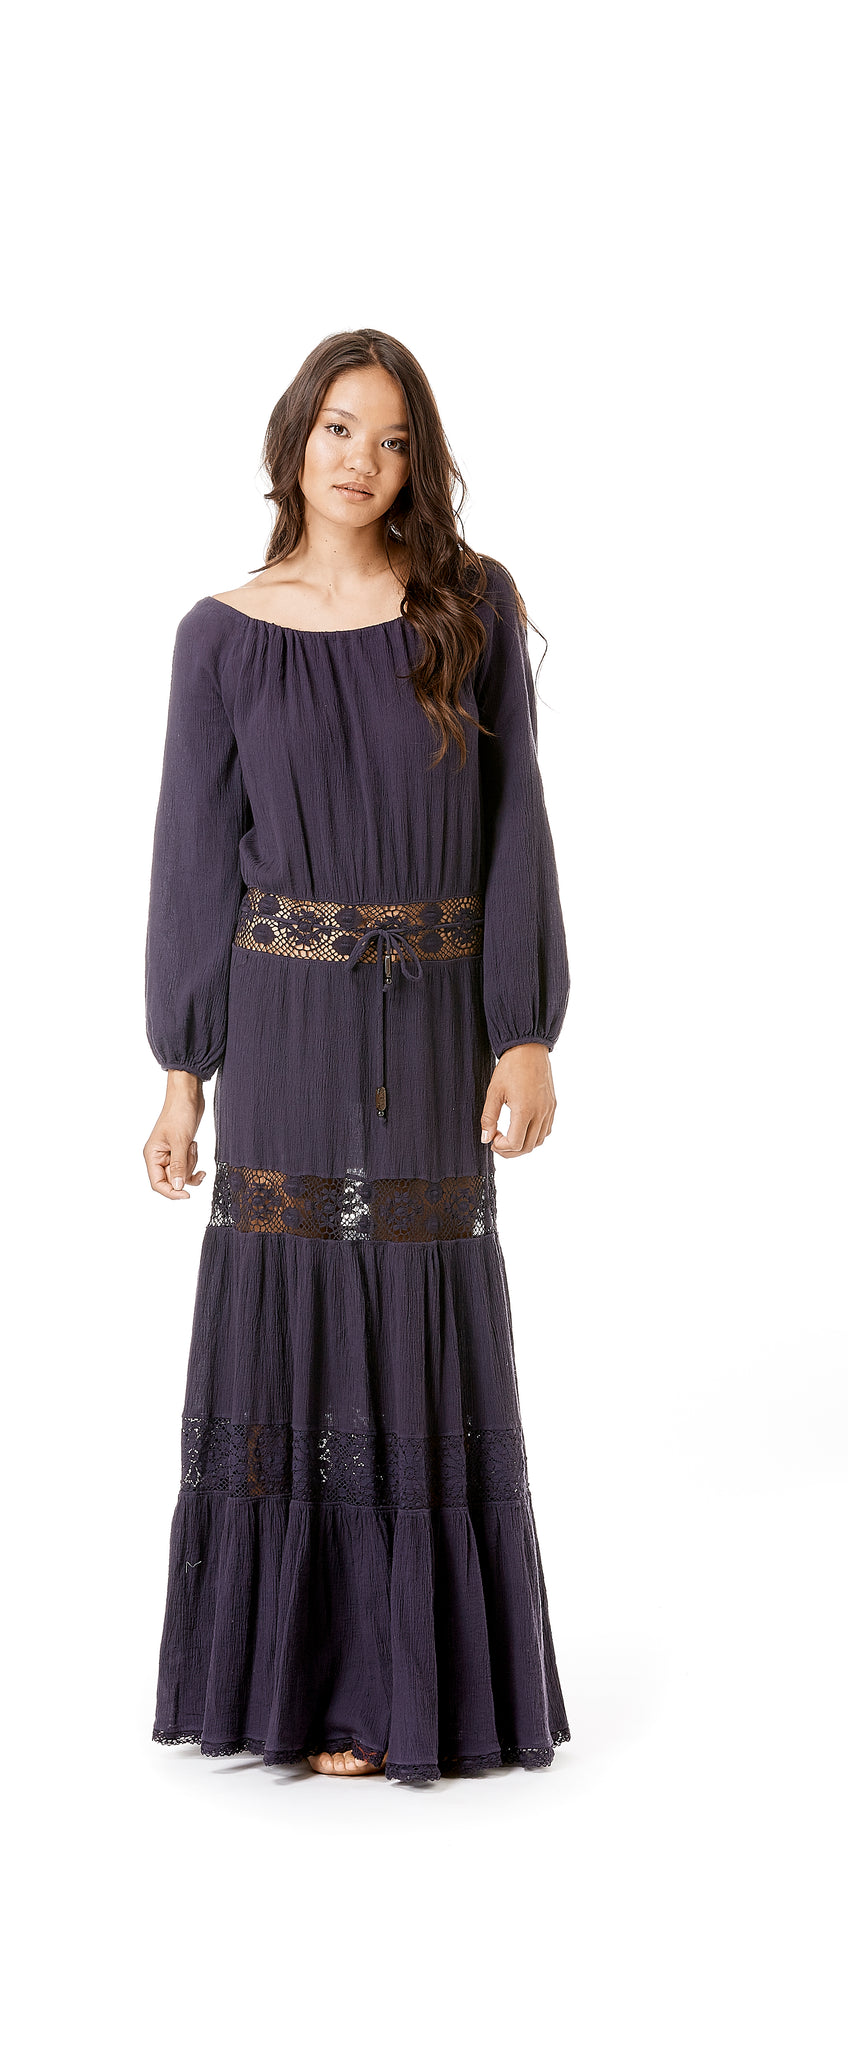 Long Sleeve Gauze Hippie Dress